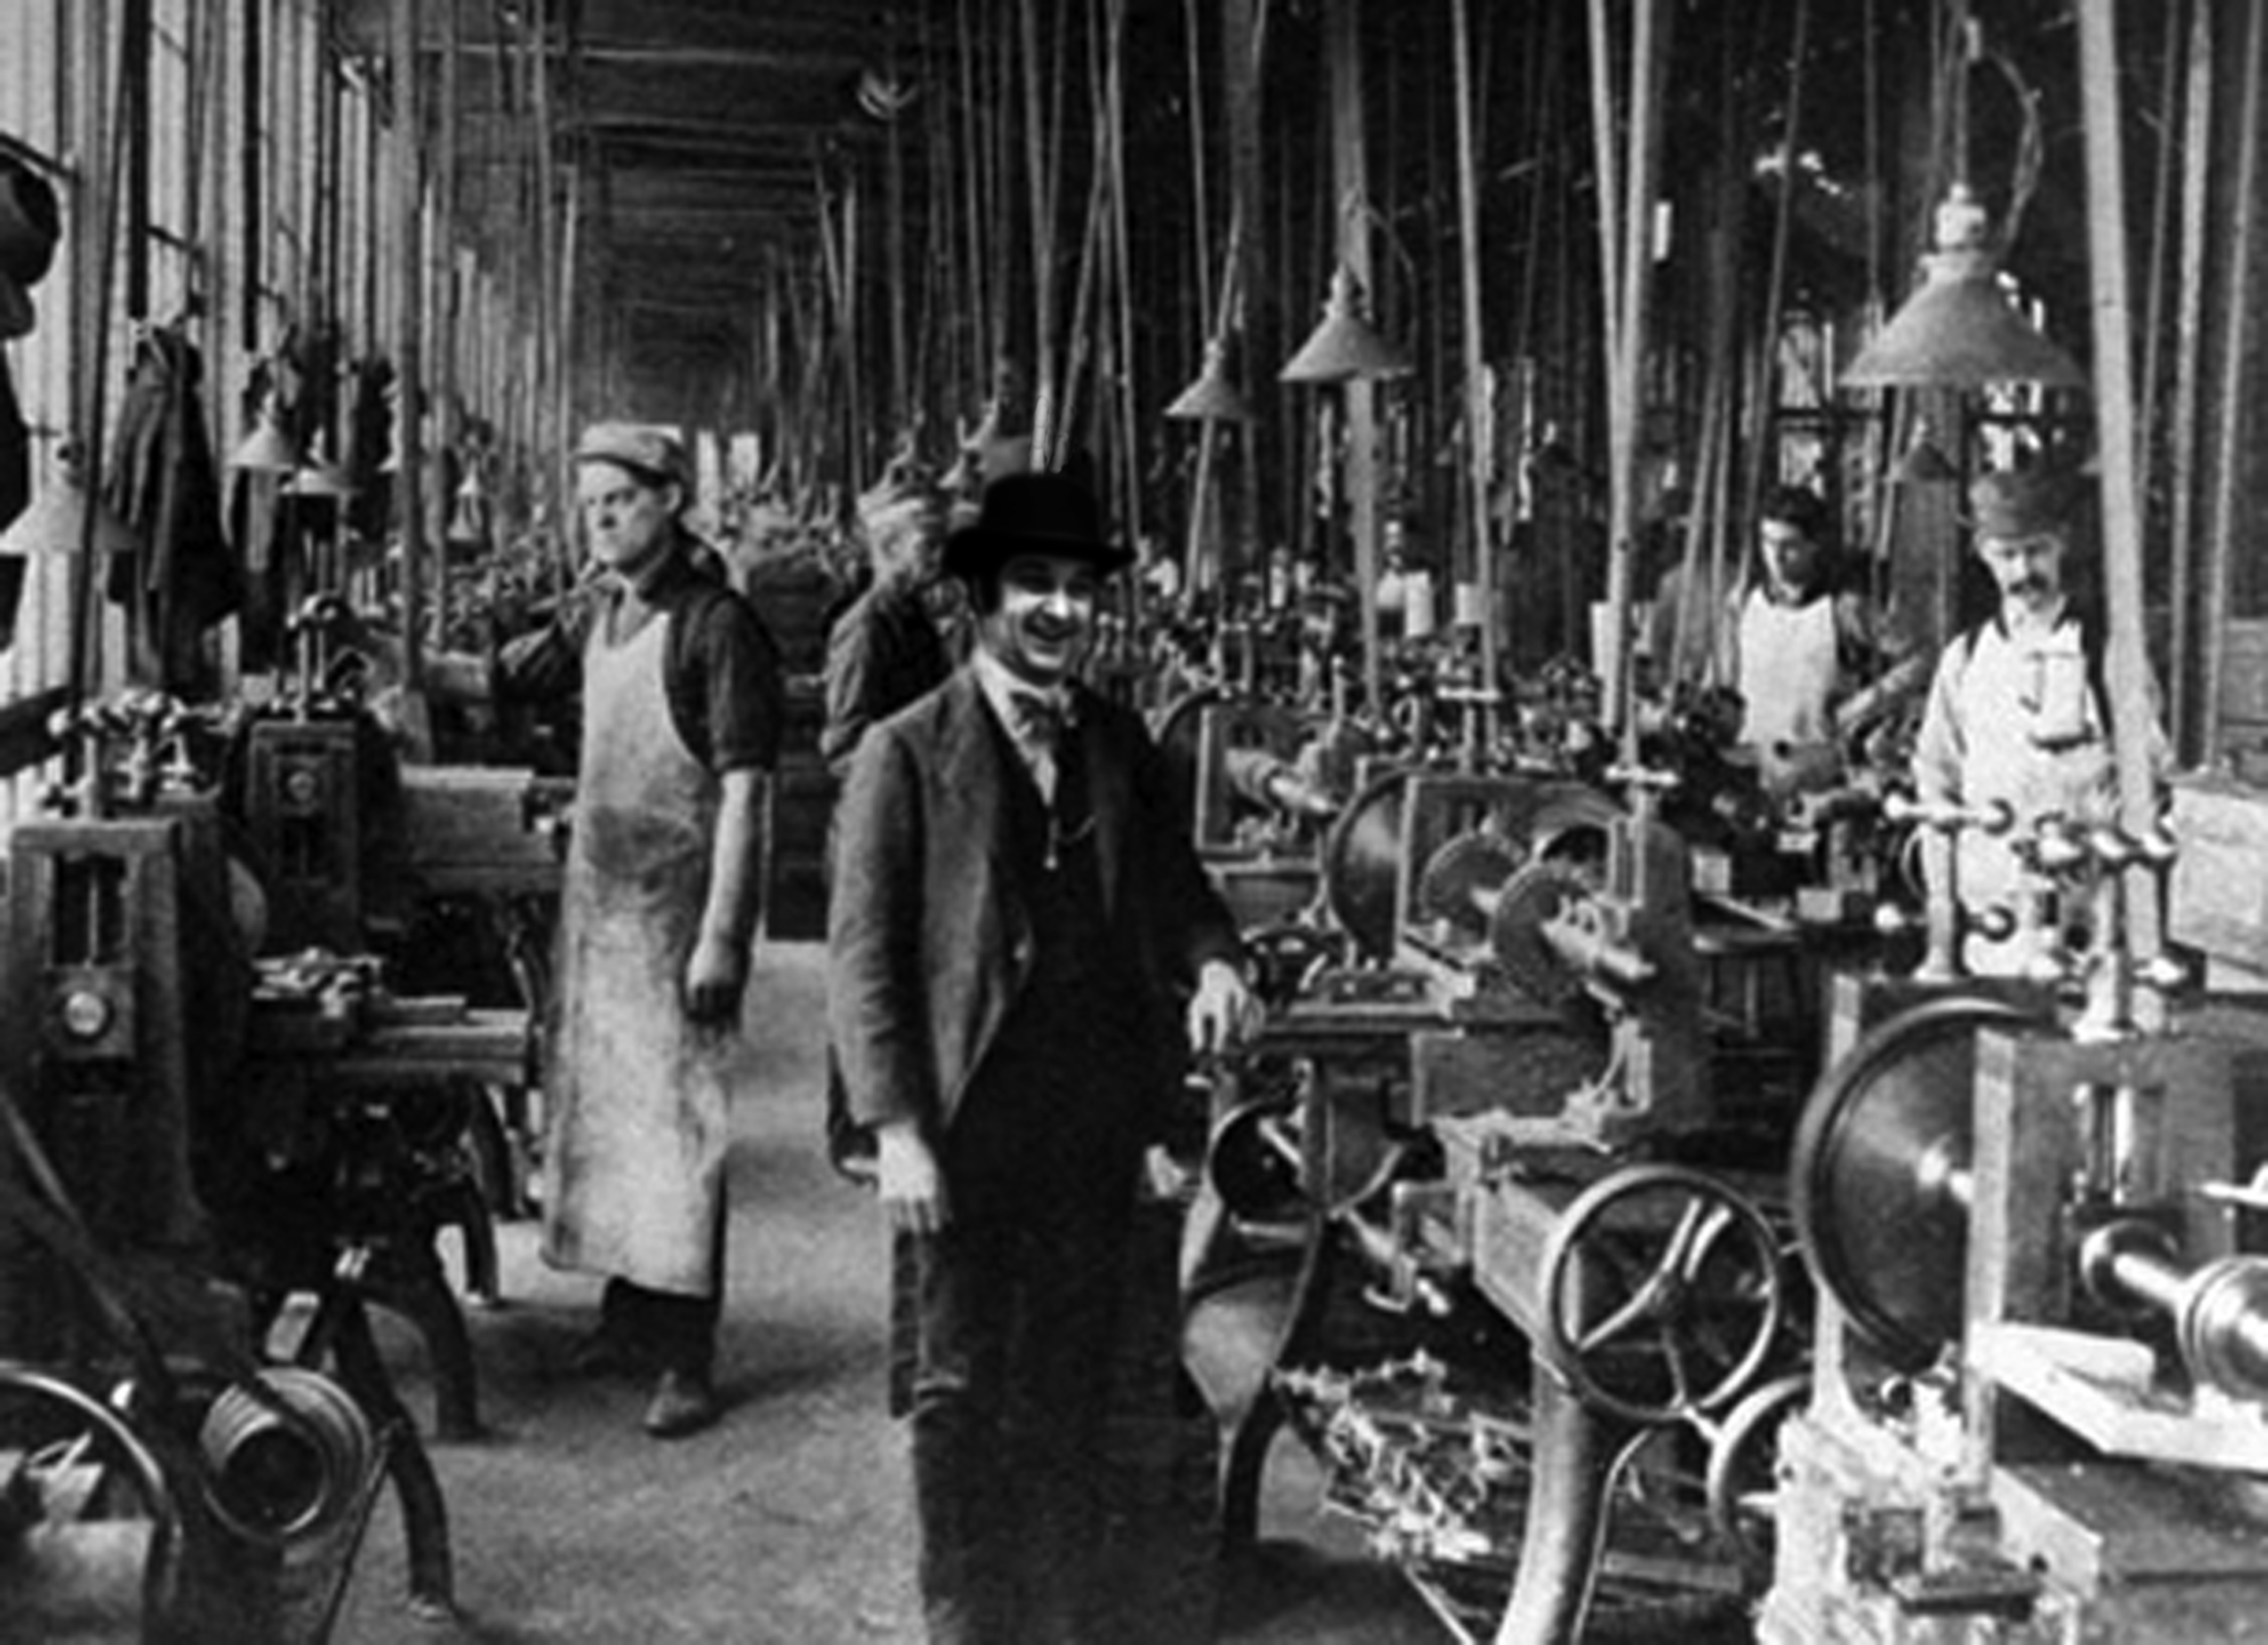 industrial revolution fashion The industrial revolution was a time of few government regulations on working conditions and hours children often had to work under very dangerous conditions they lost limbs or fingers working on high powered machinery with little training they worked in mines.